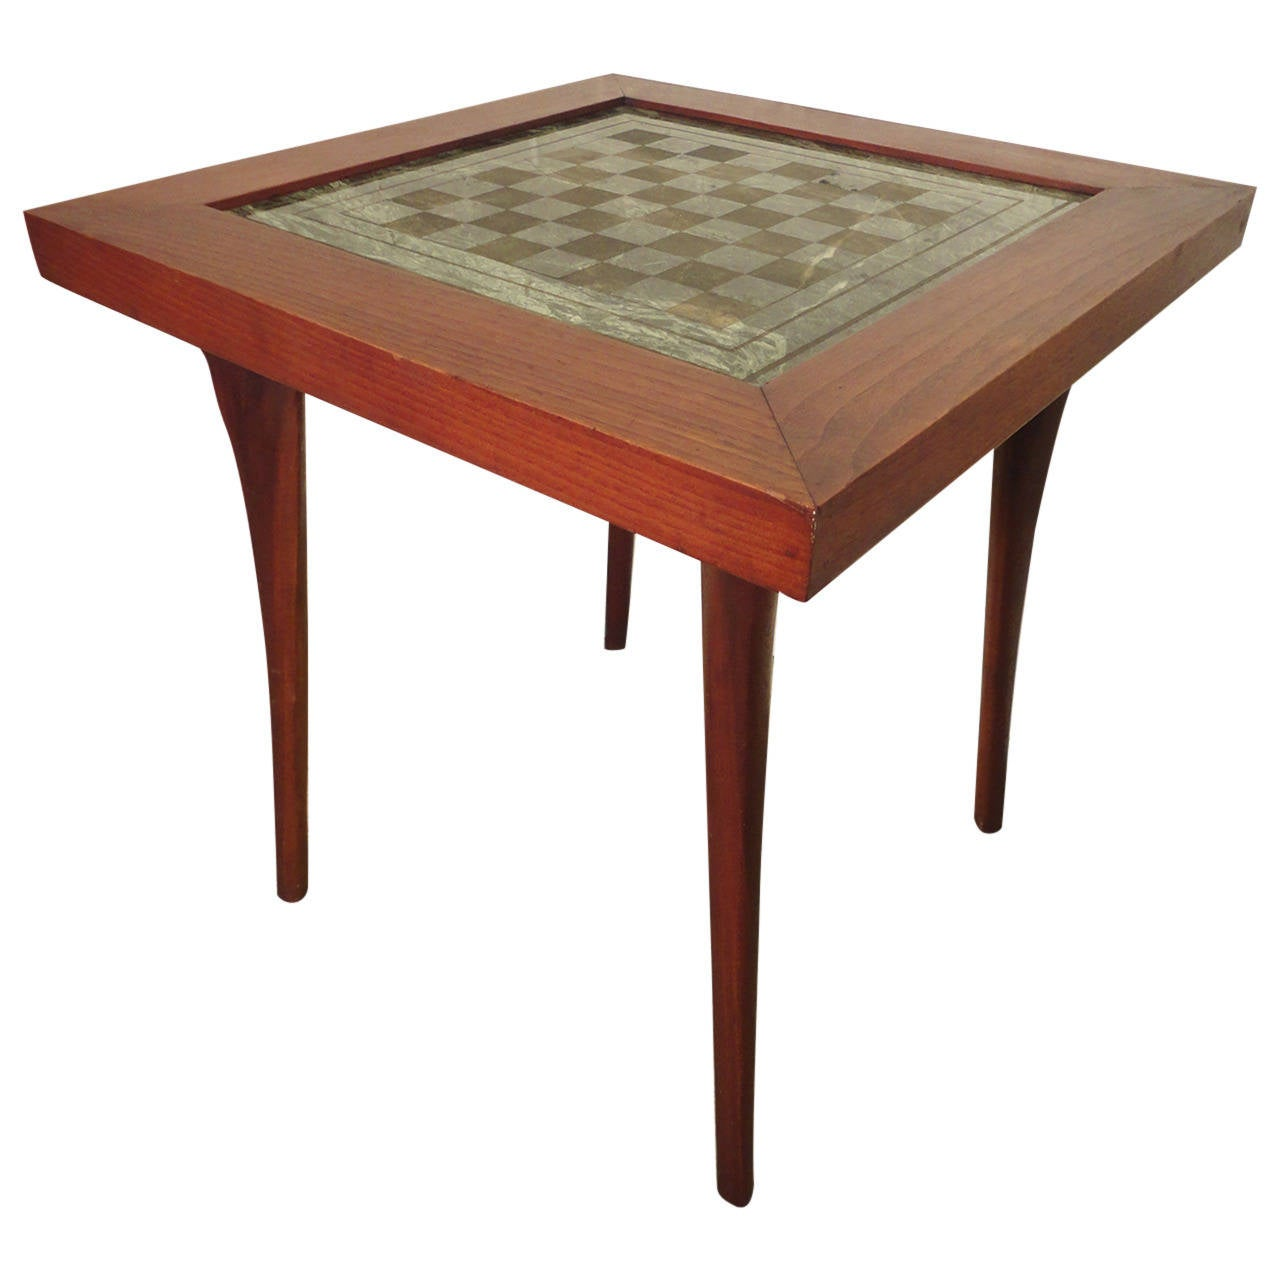 Well Designed Mid Century Chess Table 1